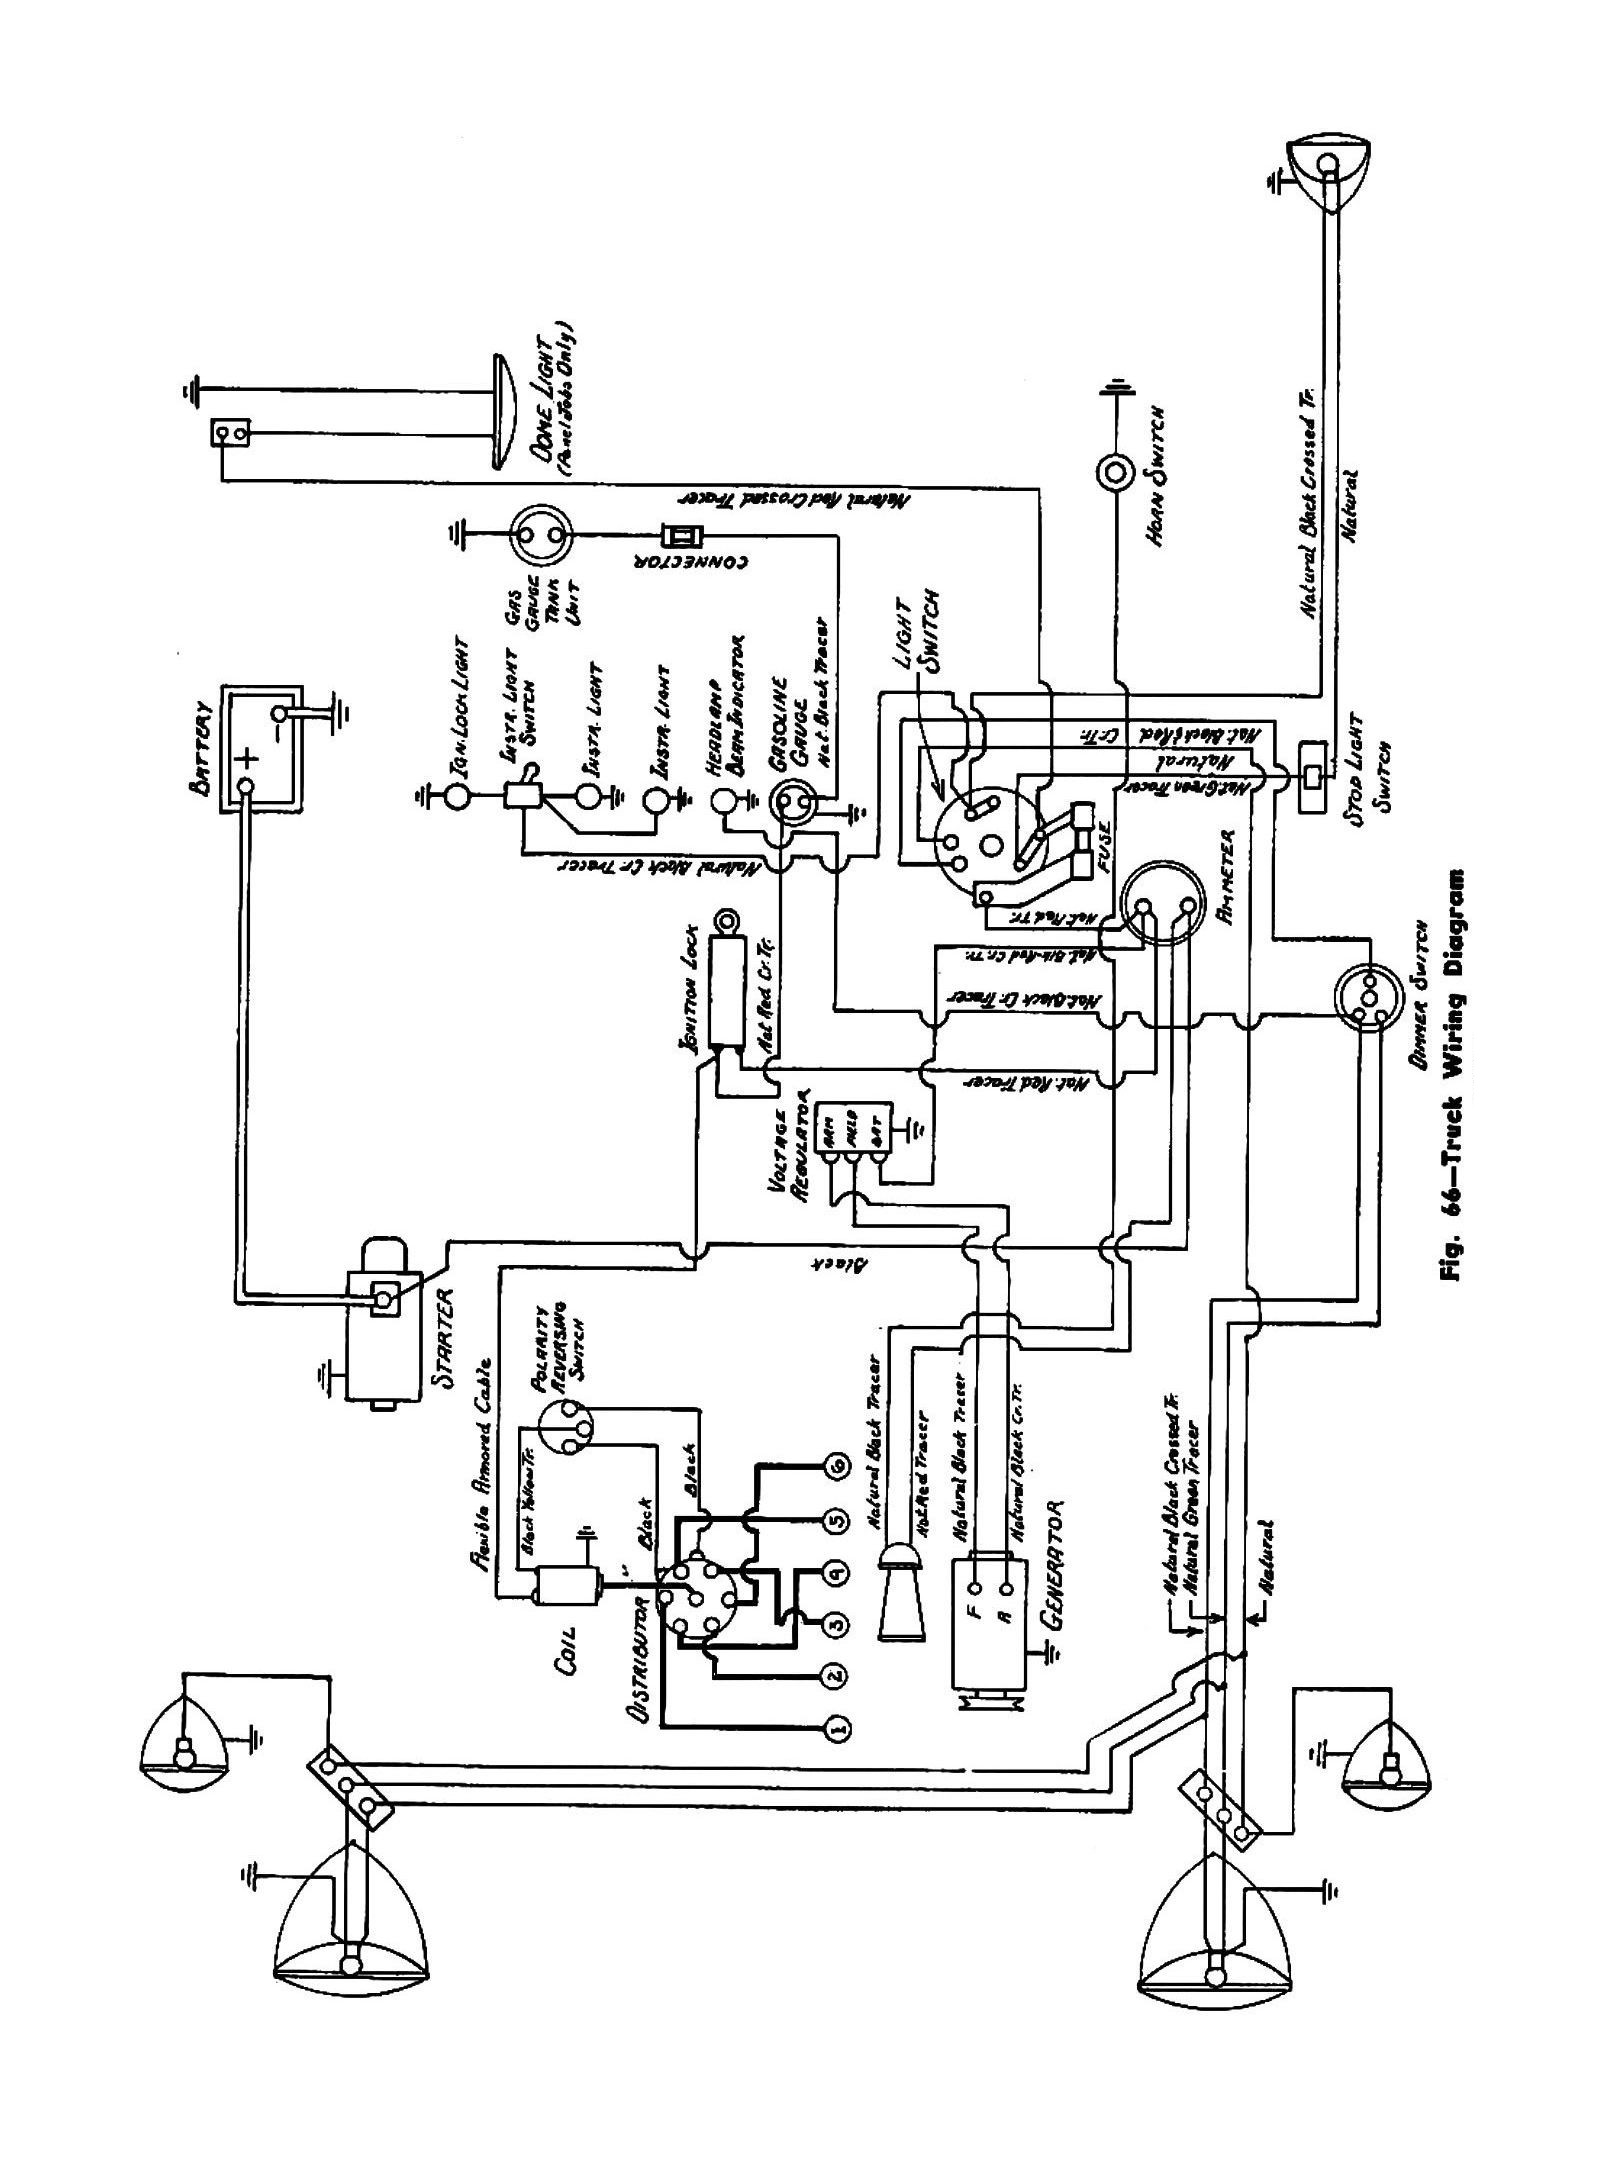 45truck chevy wiring diagrams chevrolet wiring harness at mifinder.co